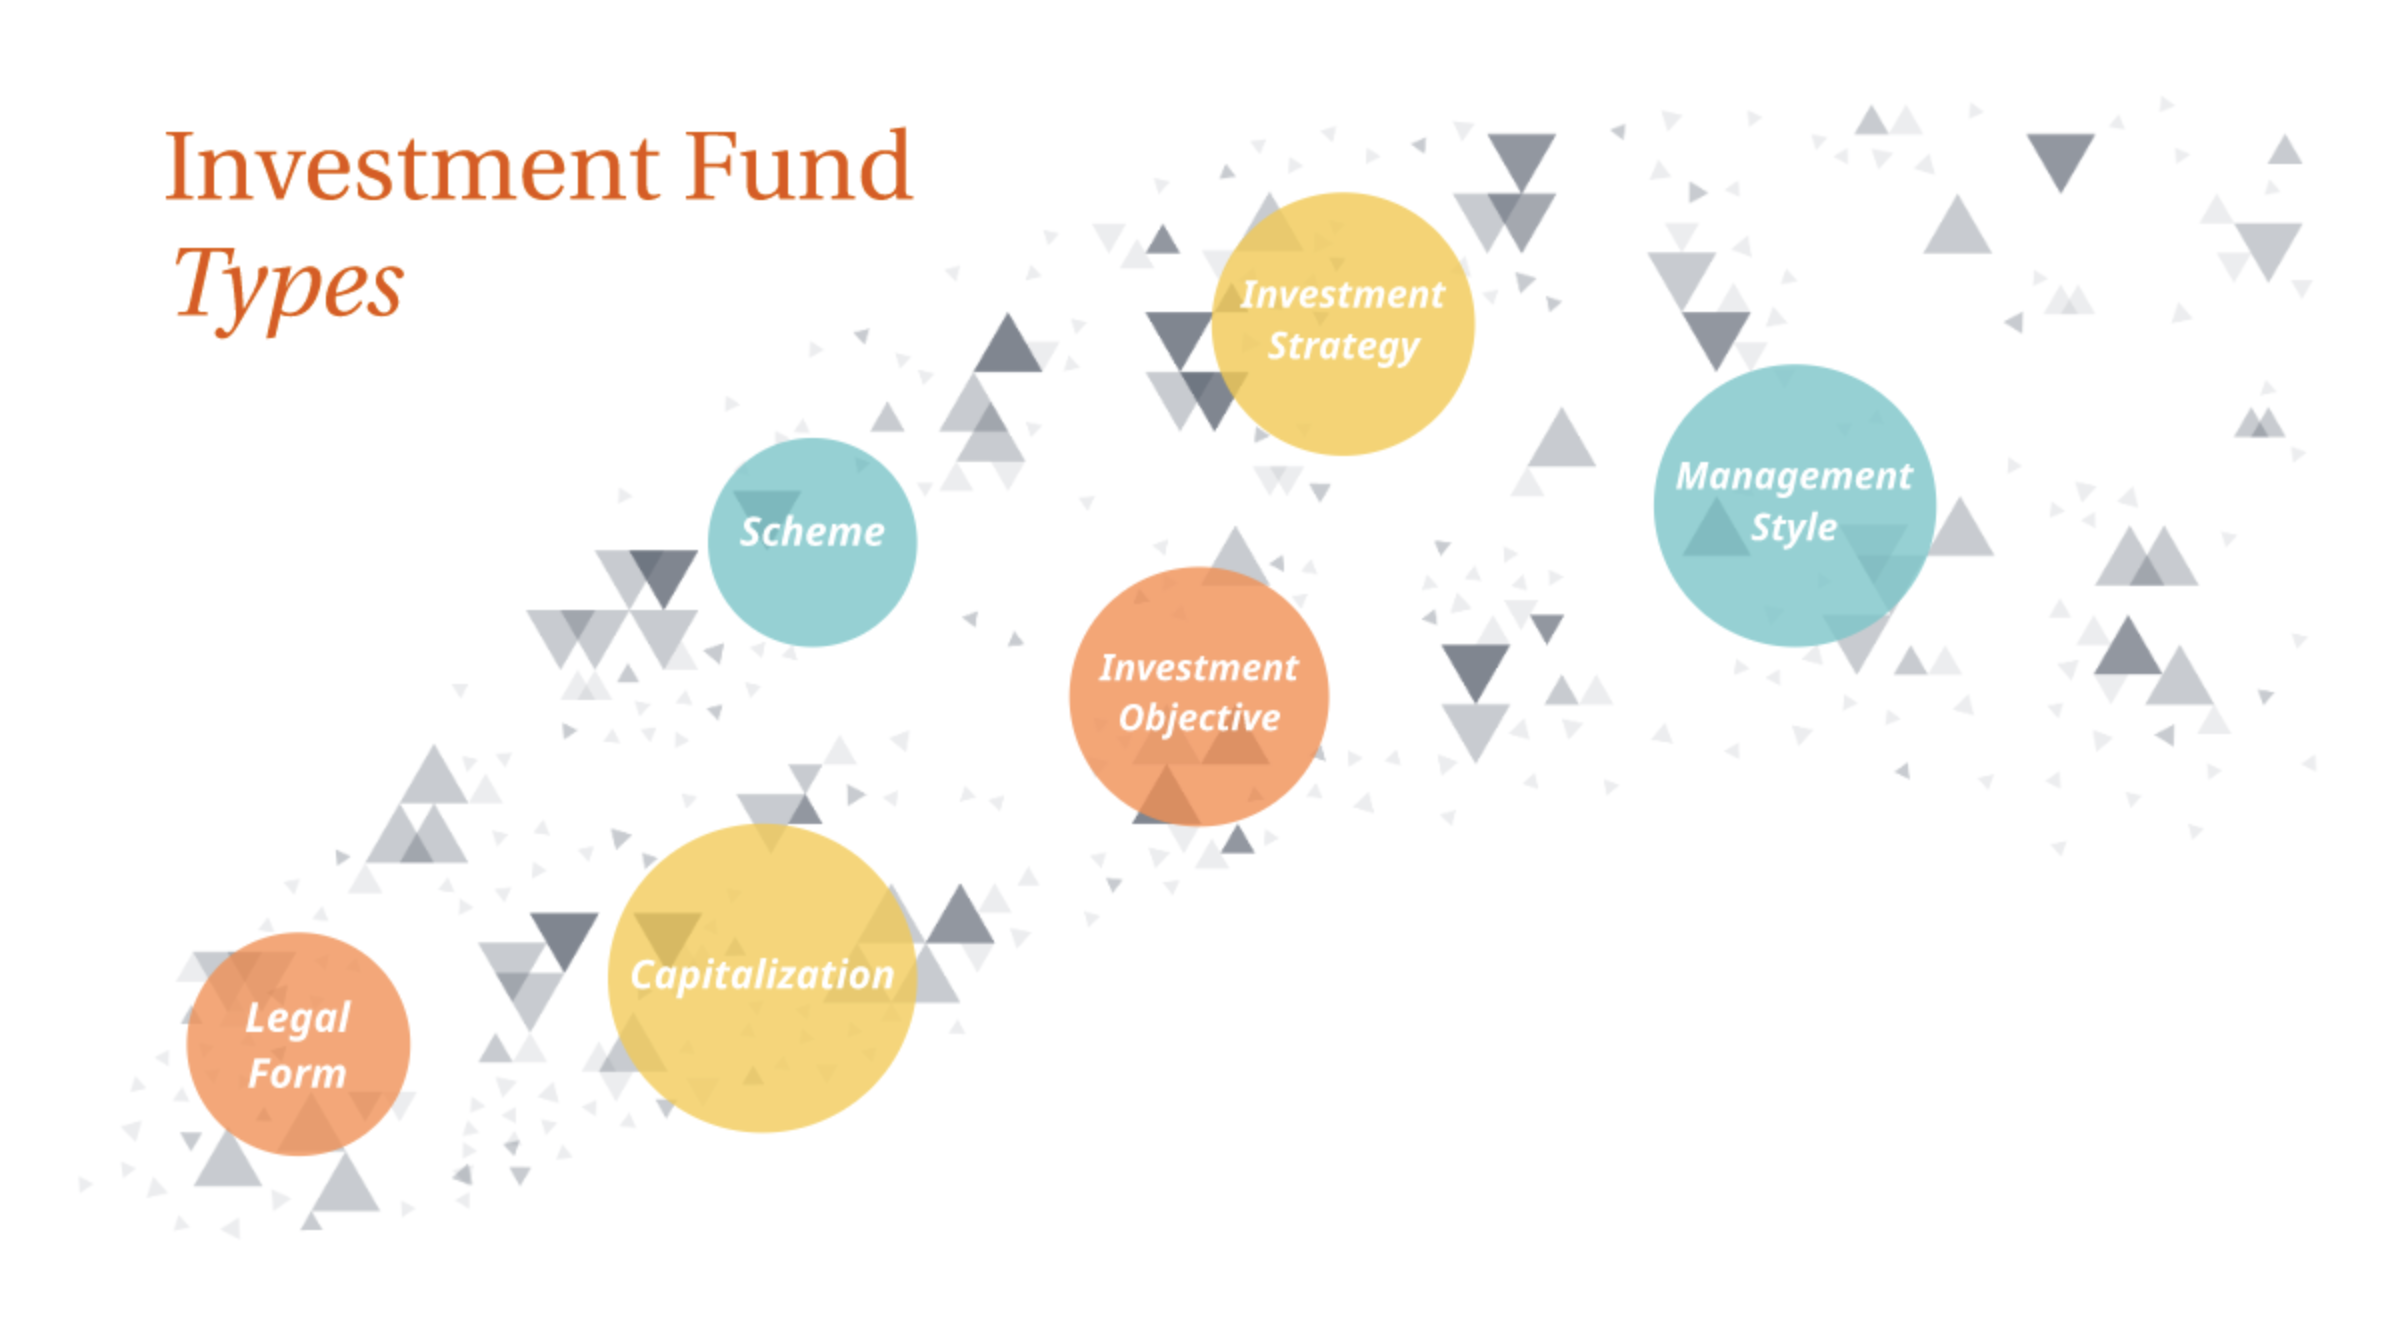 The Ultimate Guide On All Investment Fund Types (+ Crypto Funds)